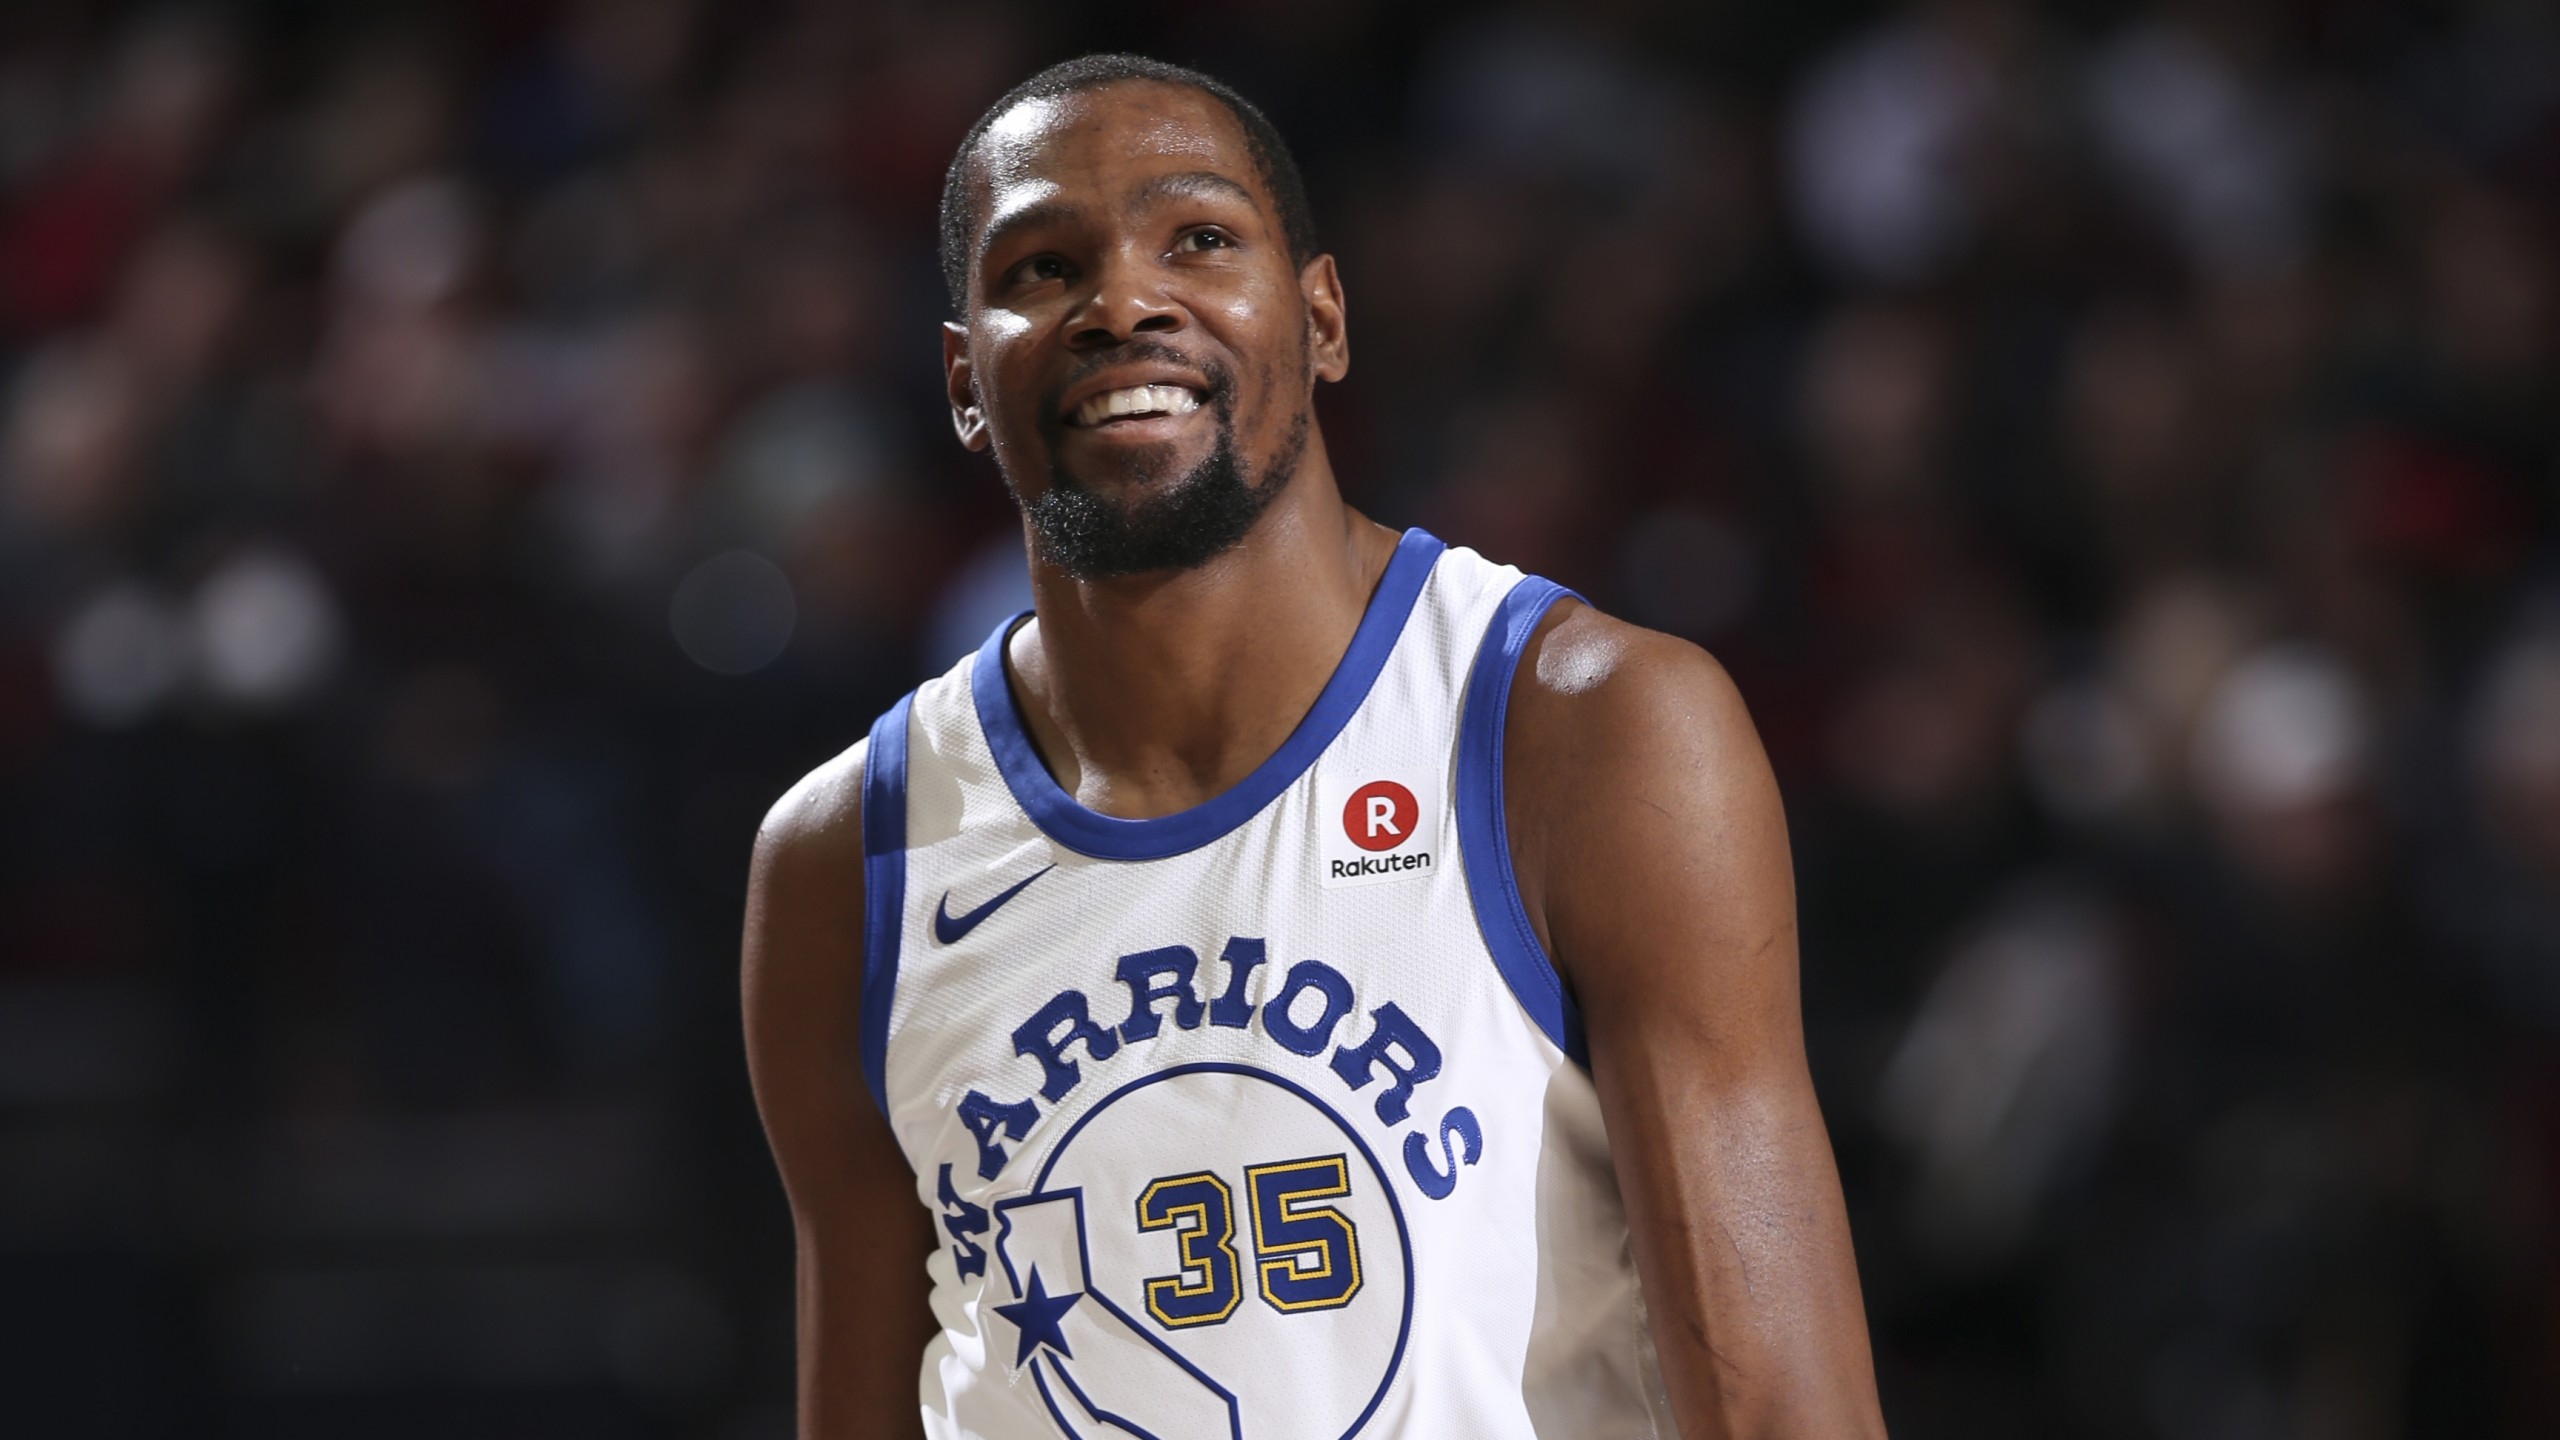 Hd Wallpapers Of Quotes On Life Wallpaper Kevin Durant Golden State Warriors Basketball